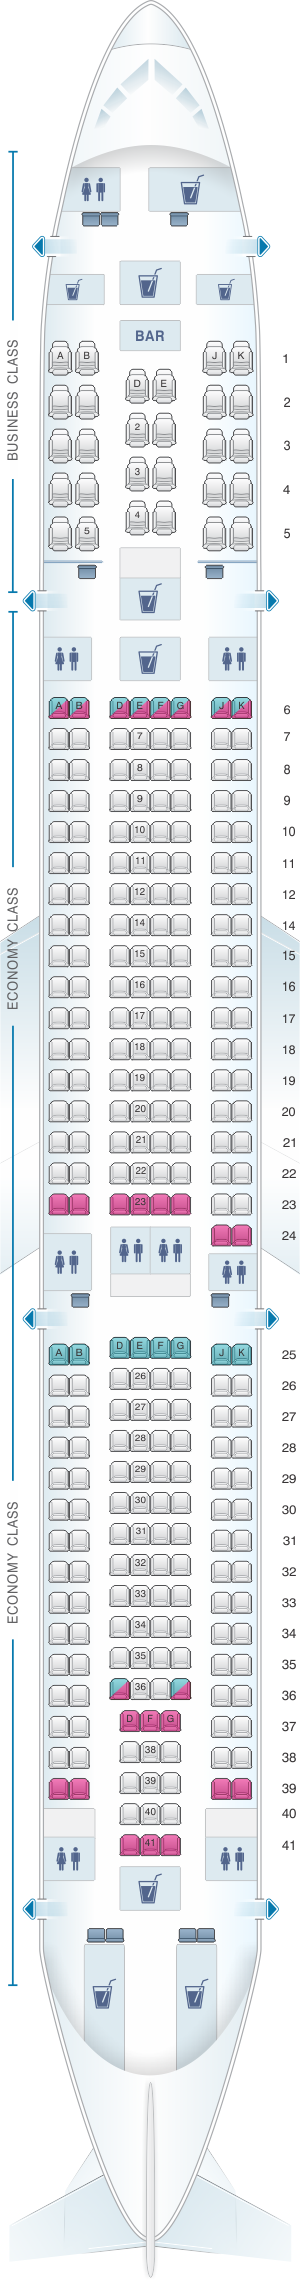 Seat map for Turkish Airlines Airbus A330 300